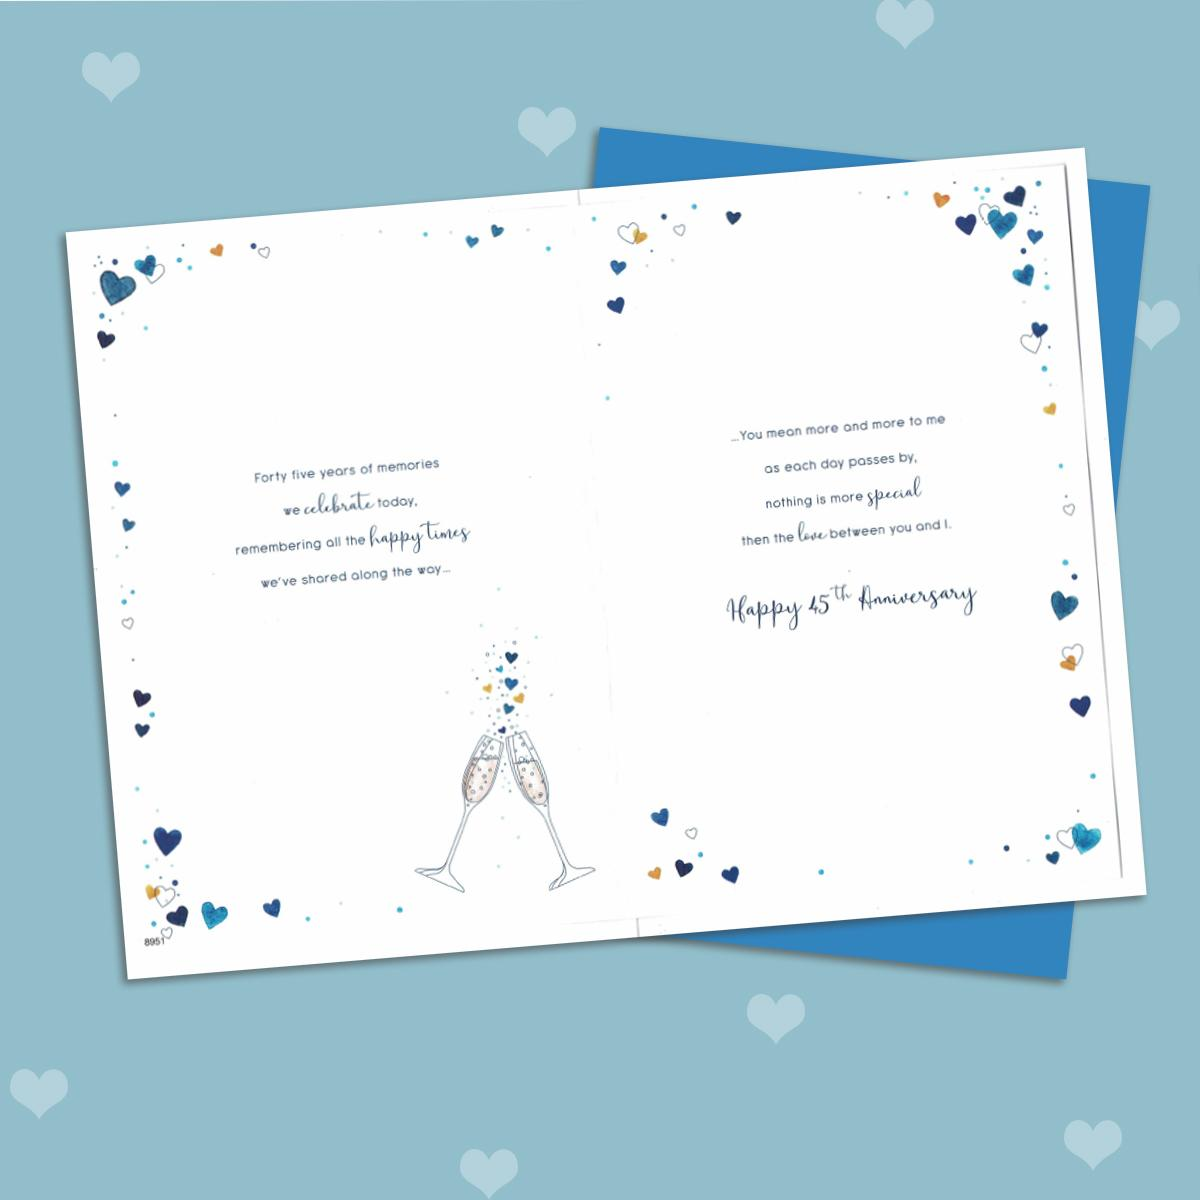 Inside Image Of Husband 45th Anniversary Card